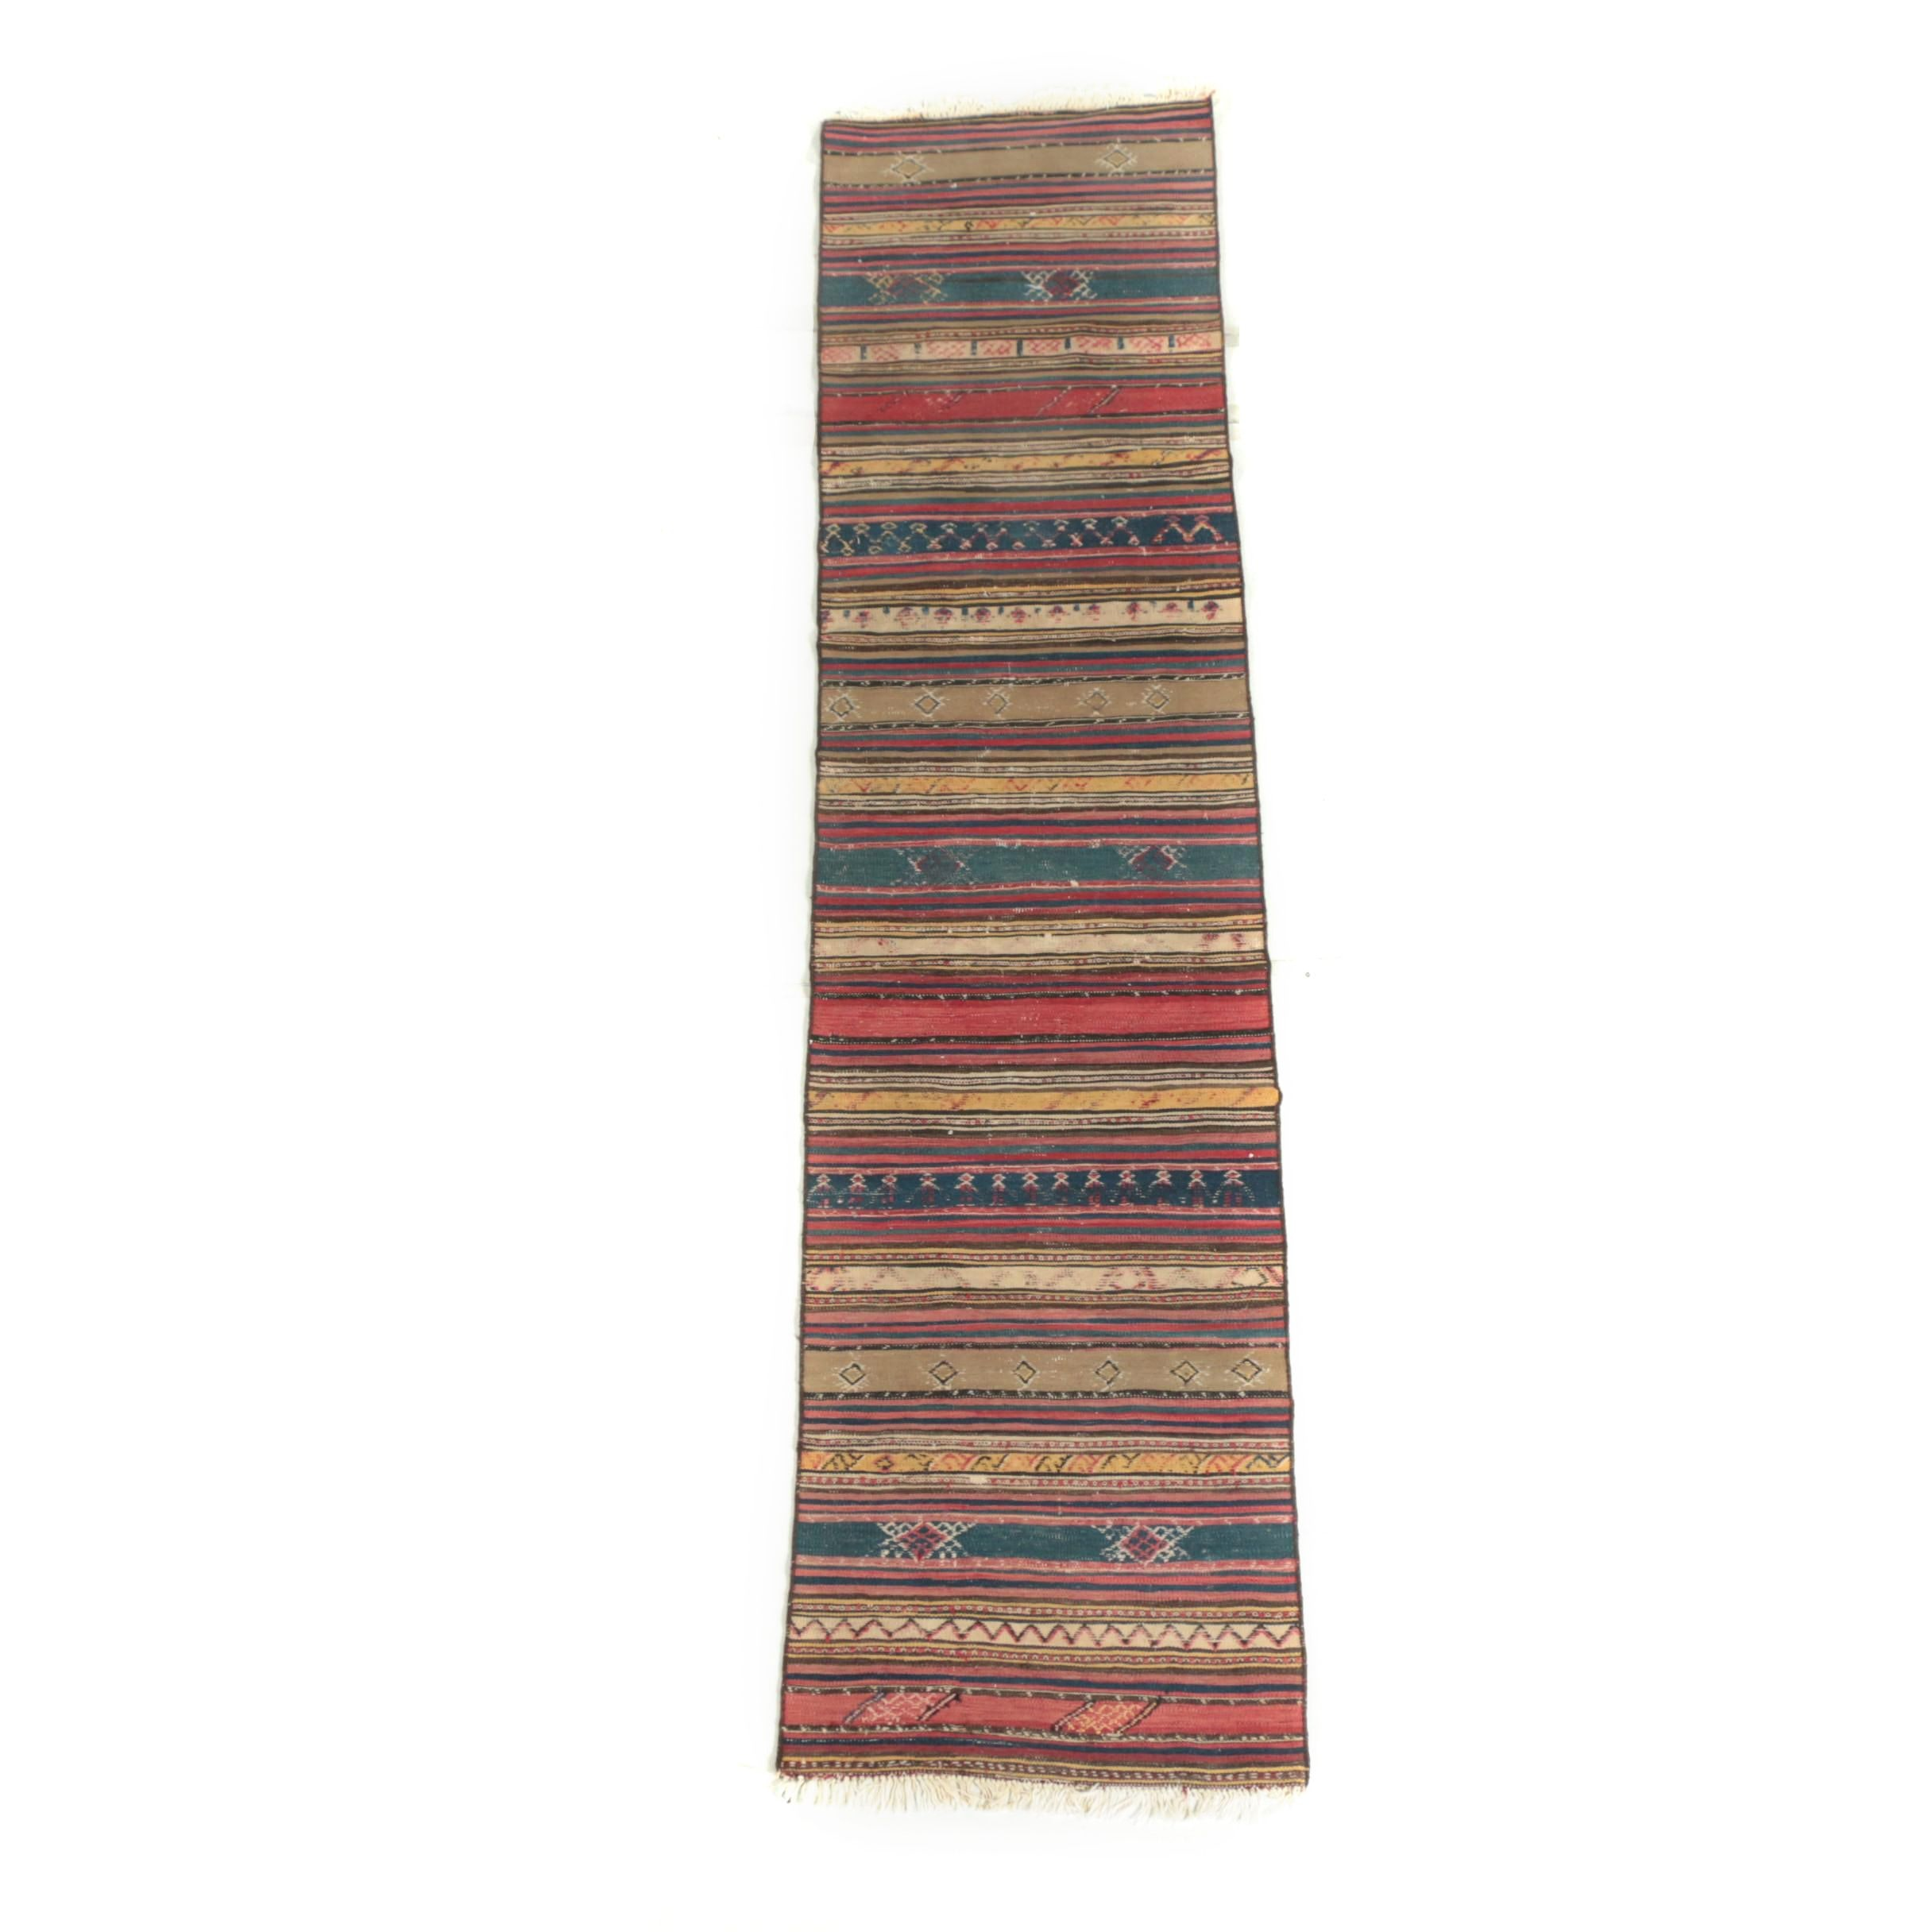 Handwoven and Embroidered Caucasian Wool Runner